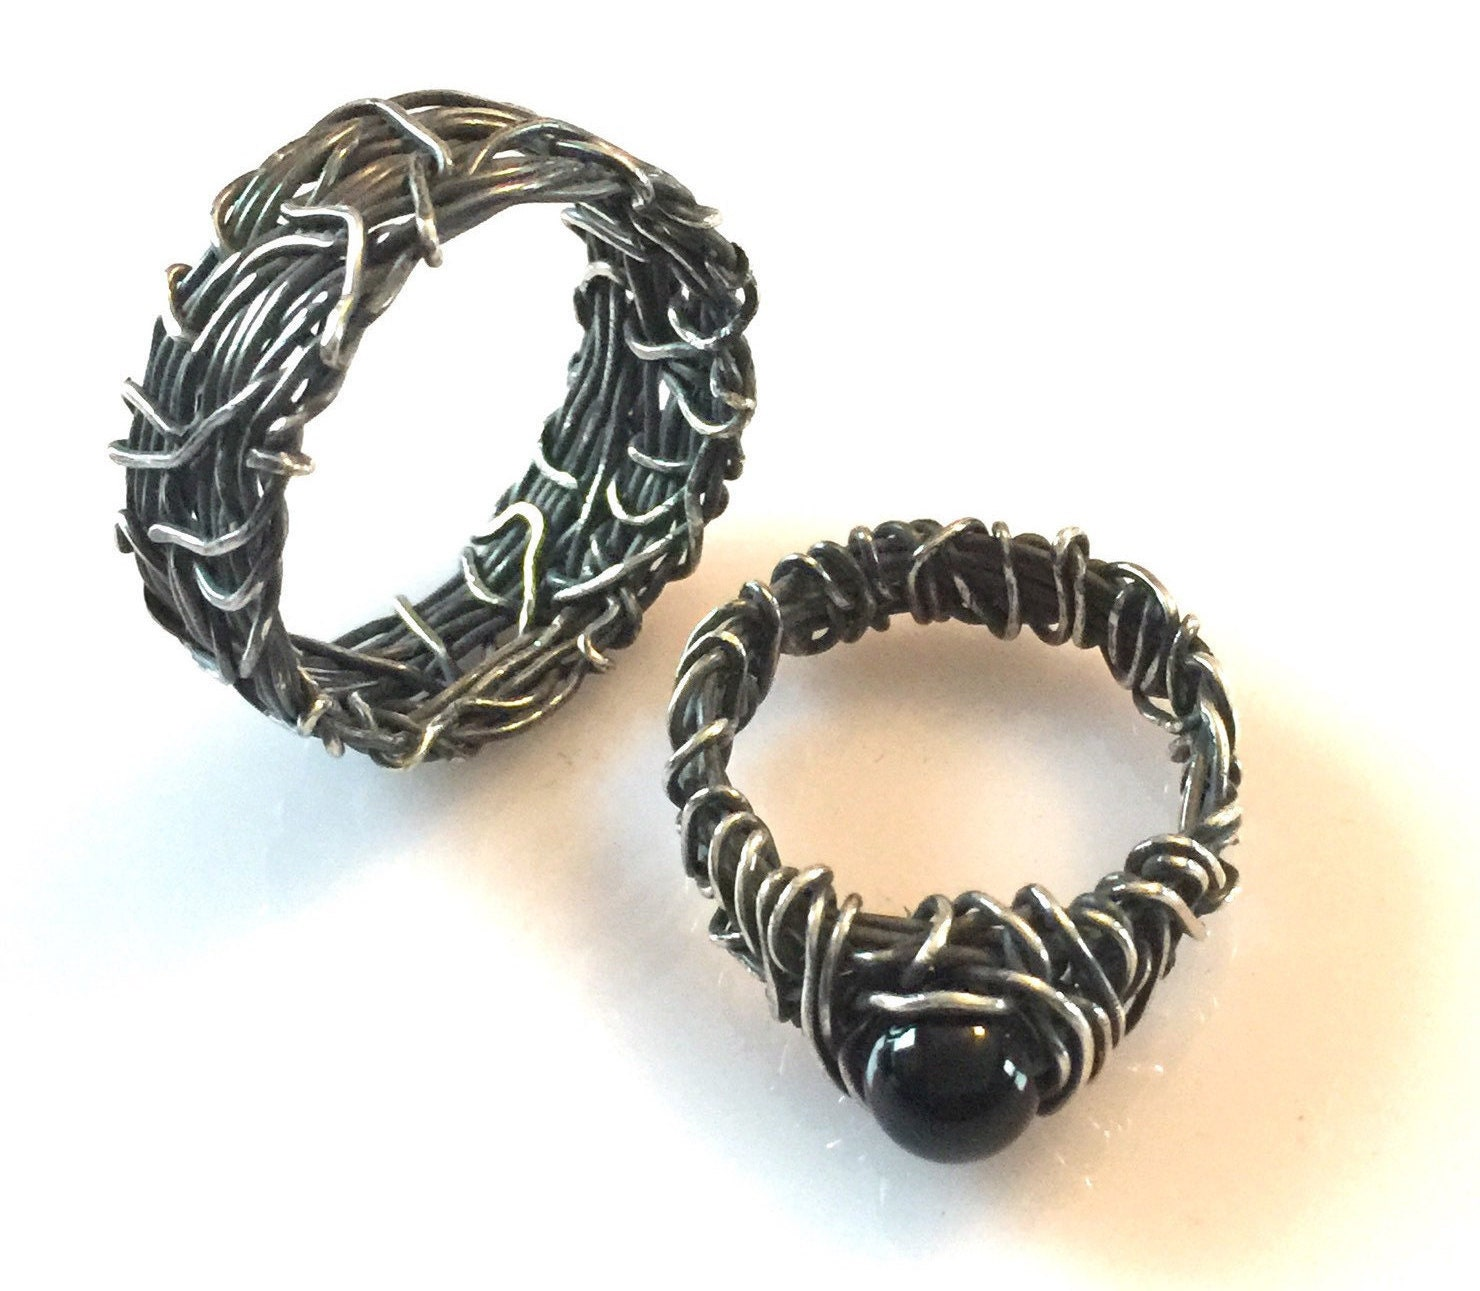 I would be honored to create this his and hers wedding ring set in oxidized sterling silver with an onyx stone. It is designed to reflect the matrimony of uniqu